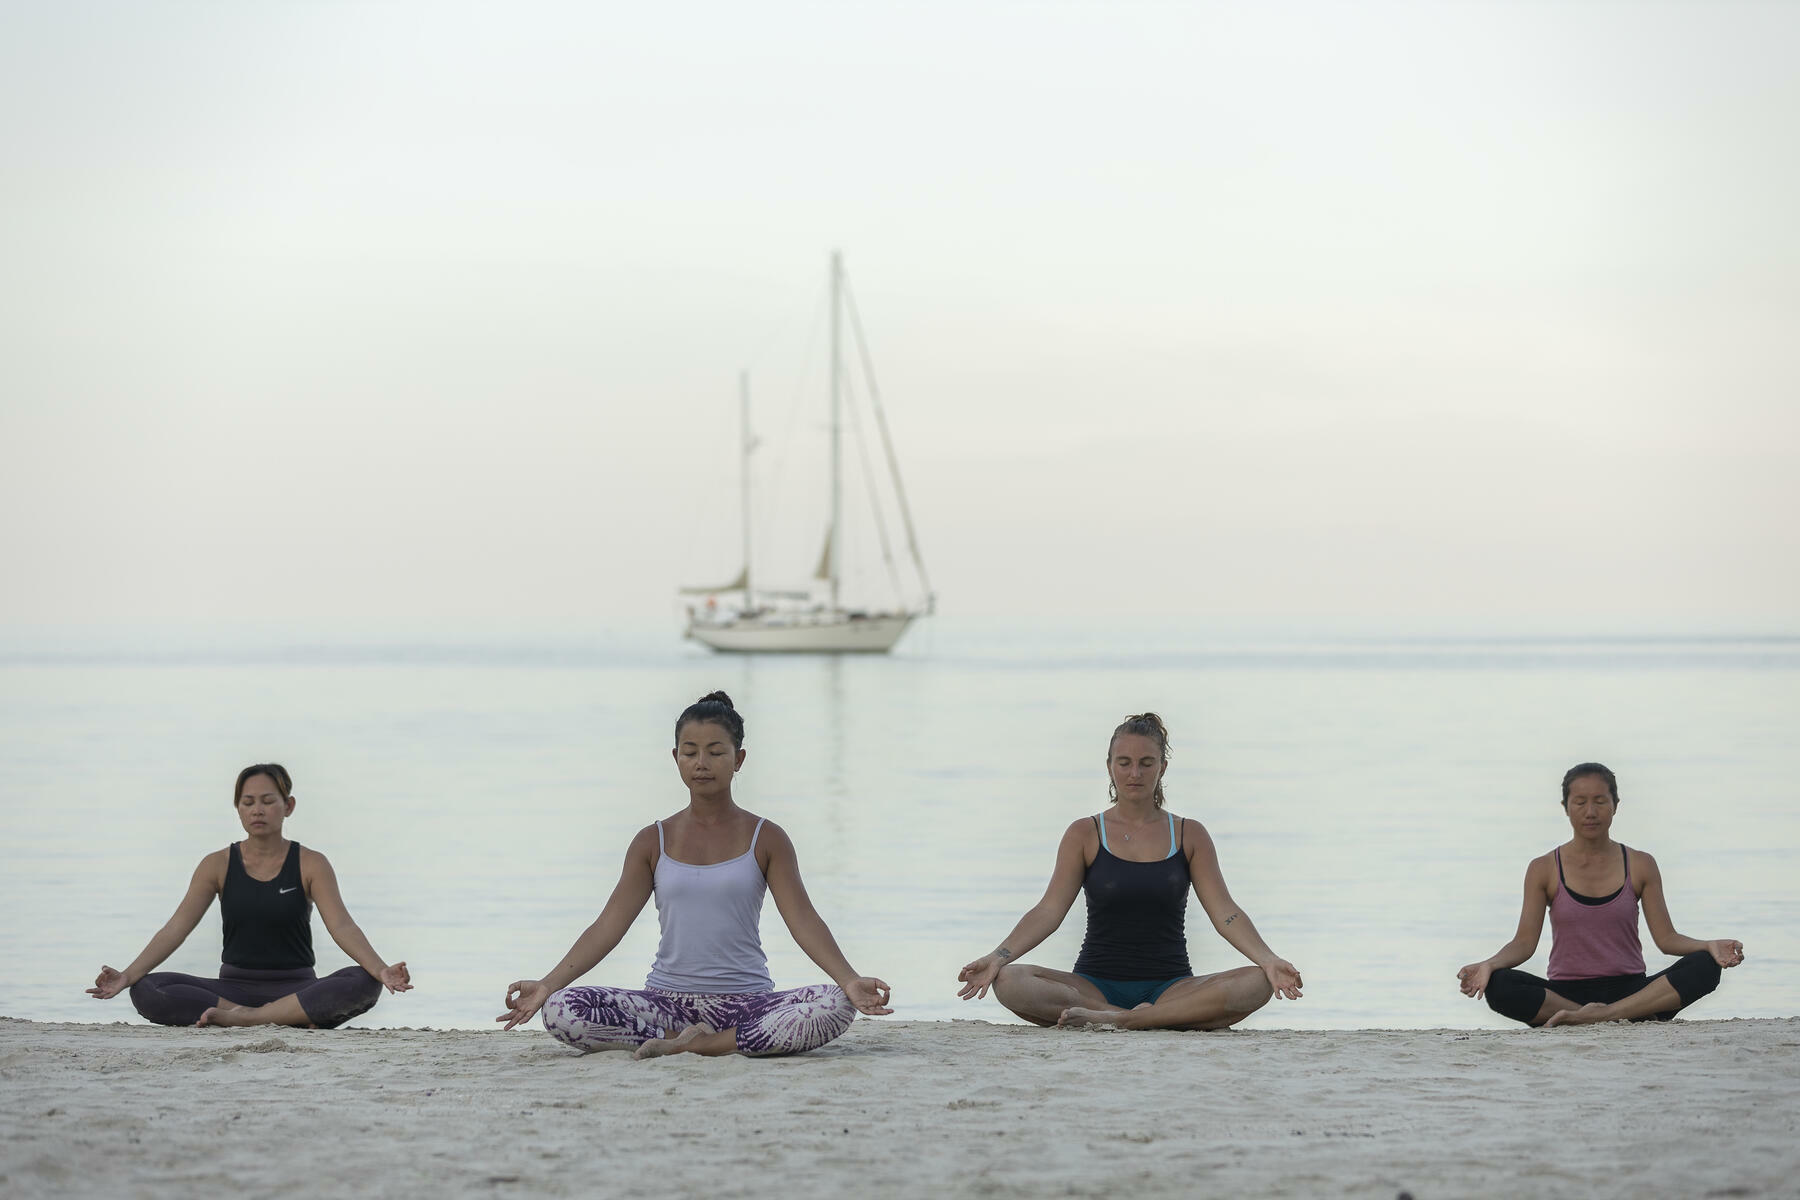 gallery/sailing-and-yoga-03.jpg